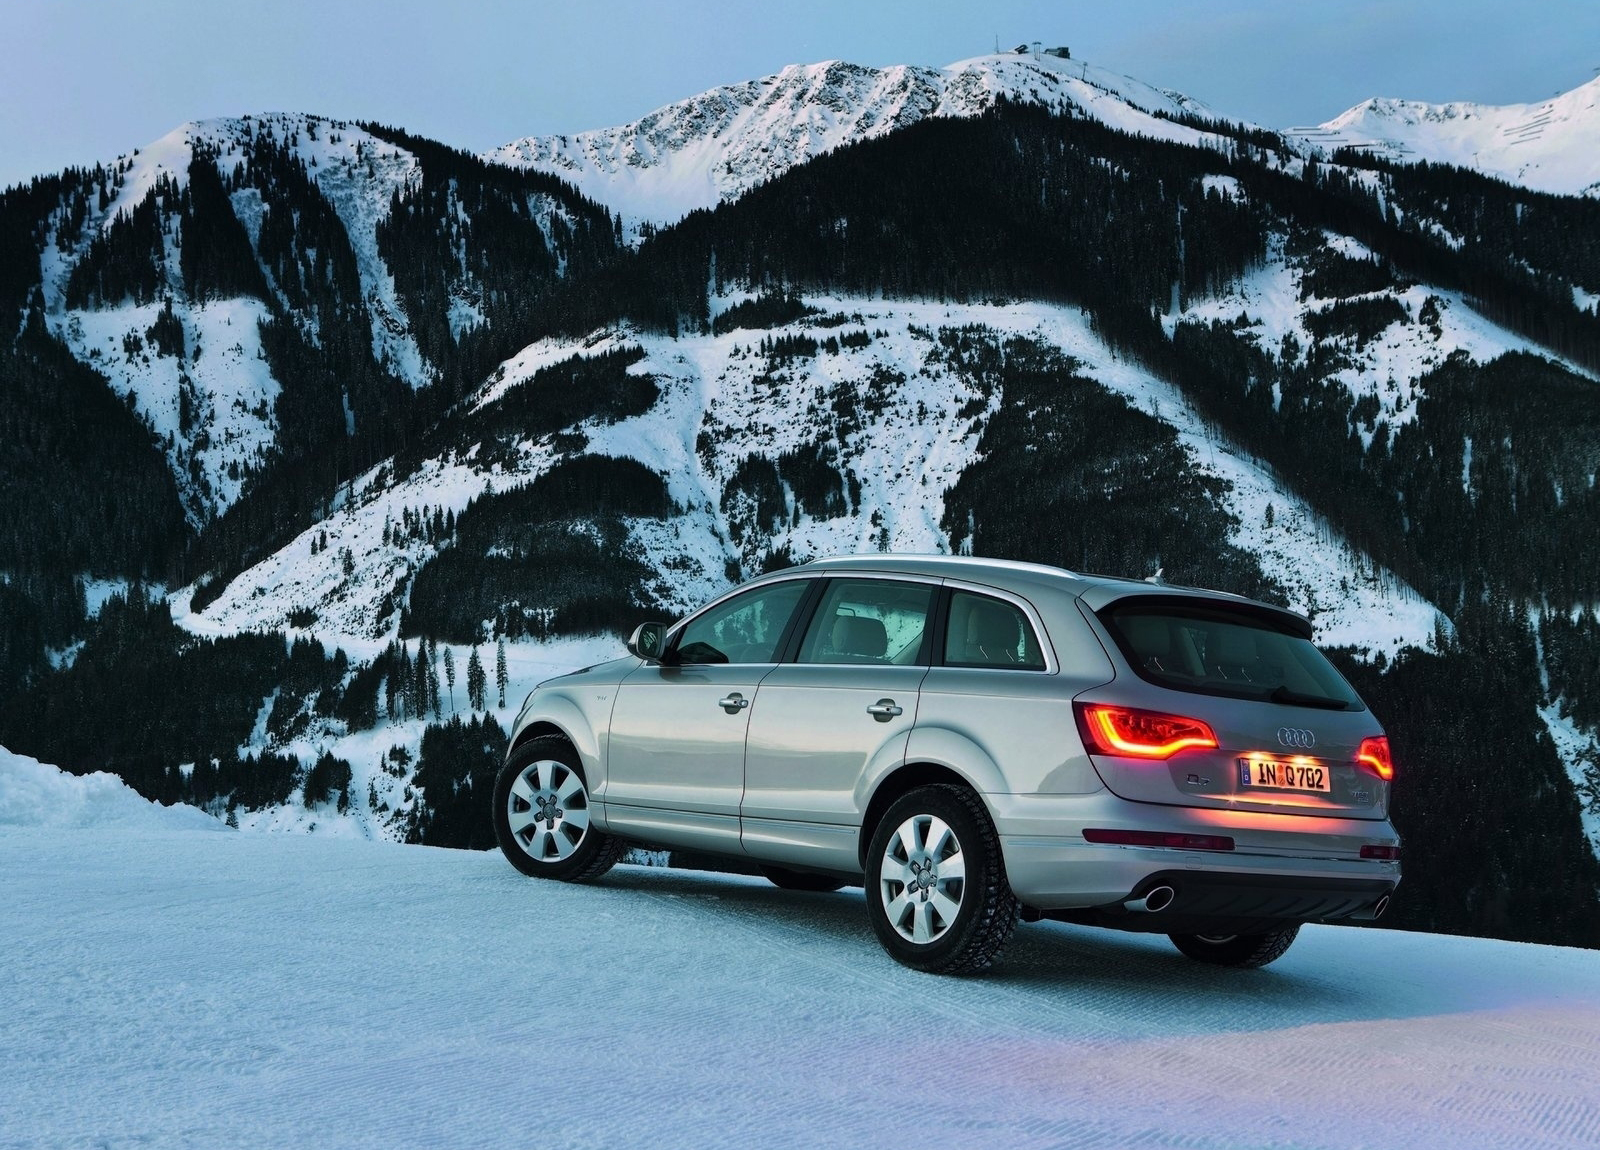 Audi Q7 Hd Wallpapers The World Of Audi